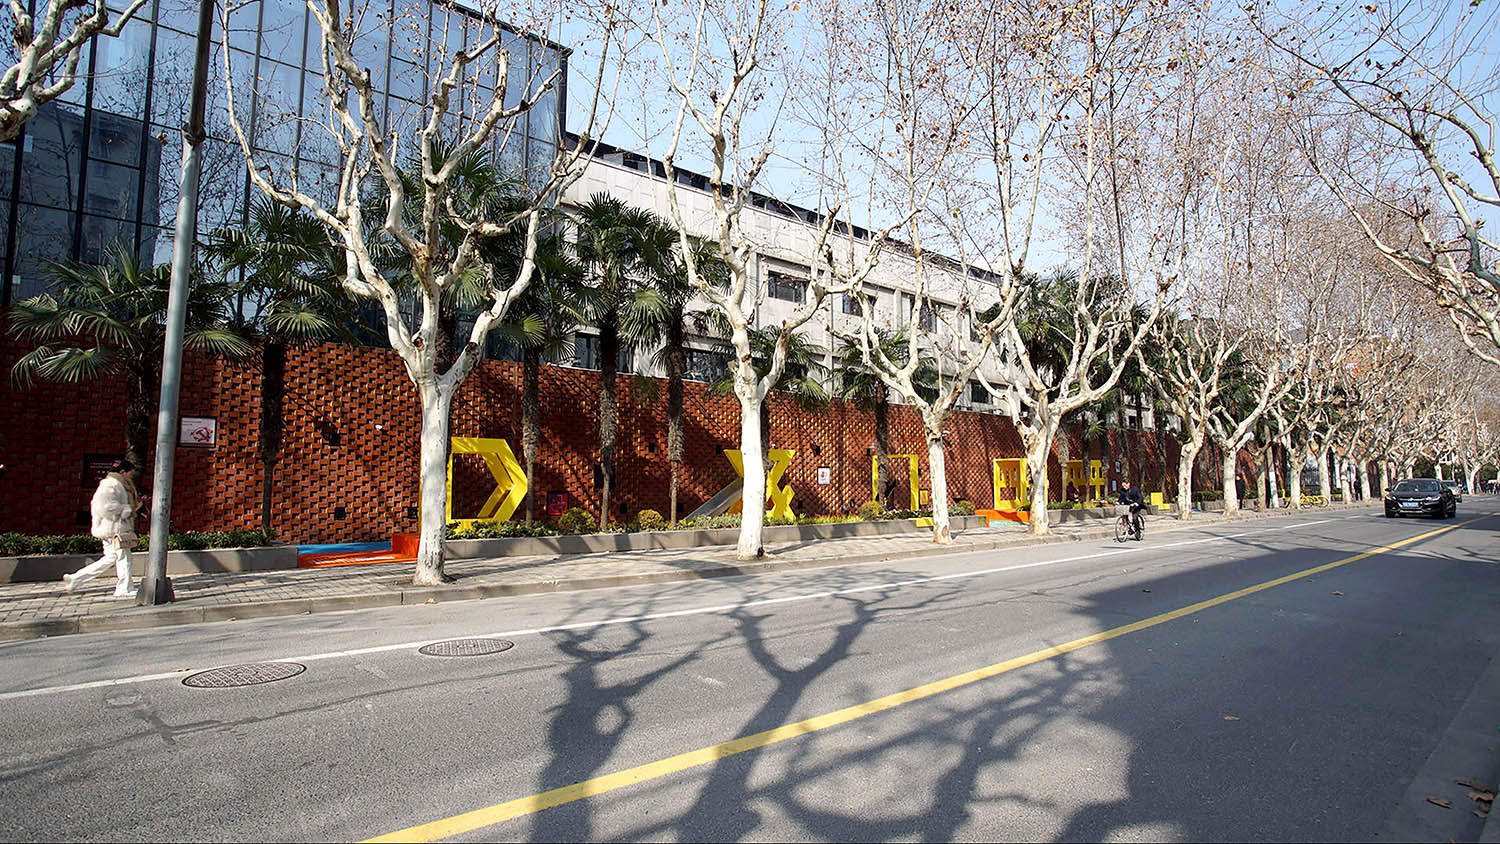 80 meters long, 3 meters wide obsolete walking path is turned into a stylish pocket park and playground Shanghai Design & Promotion Center for Urban Public Space